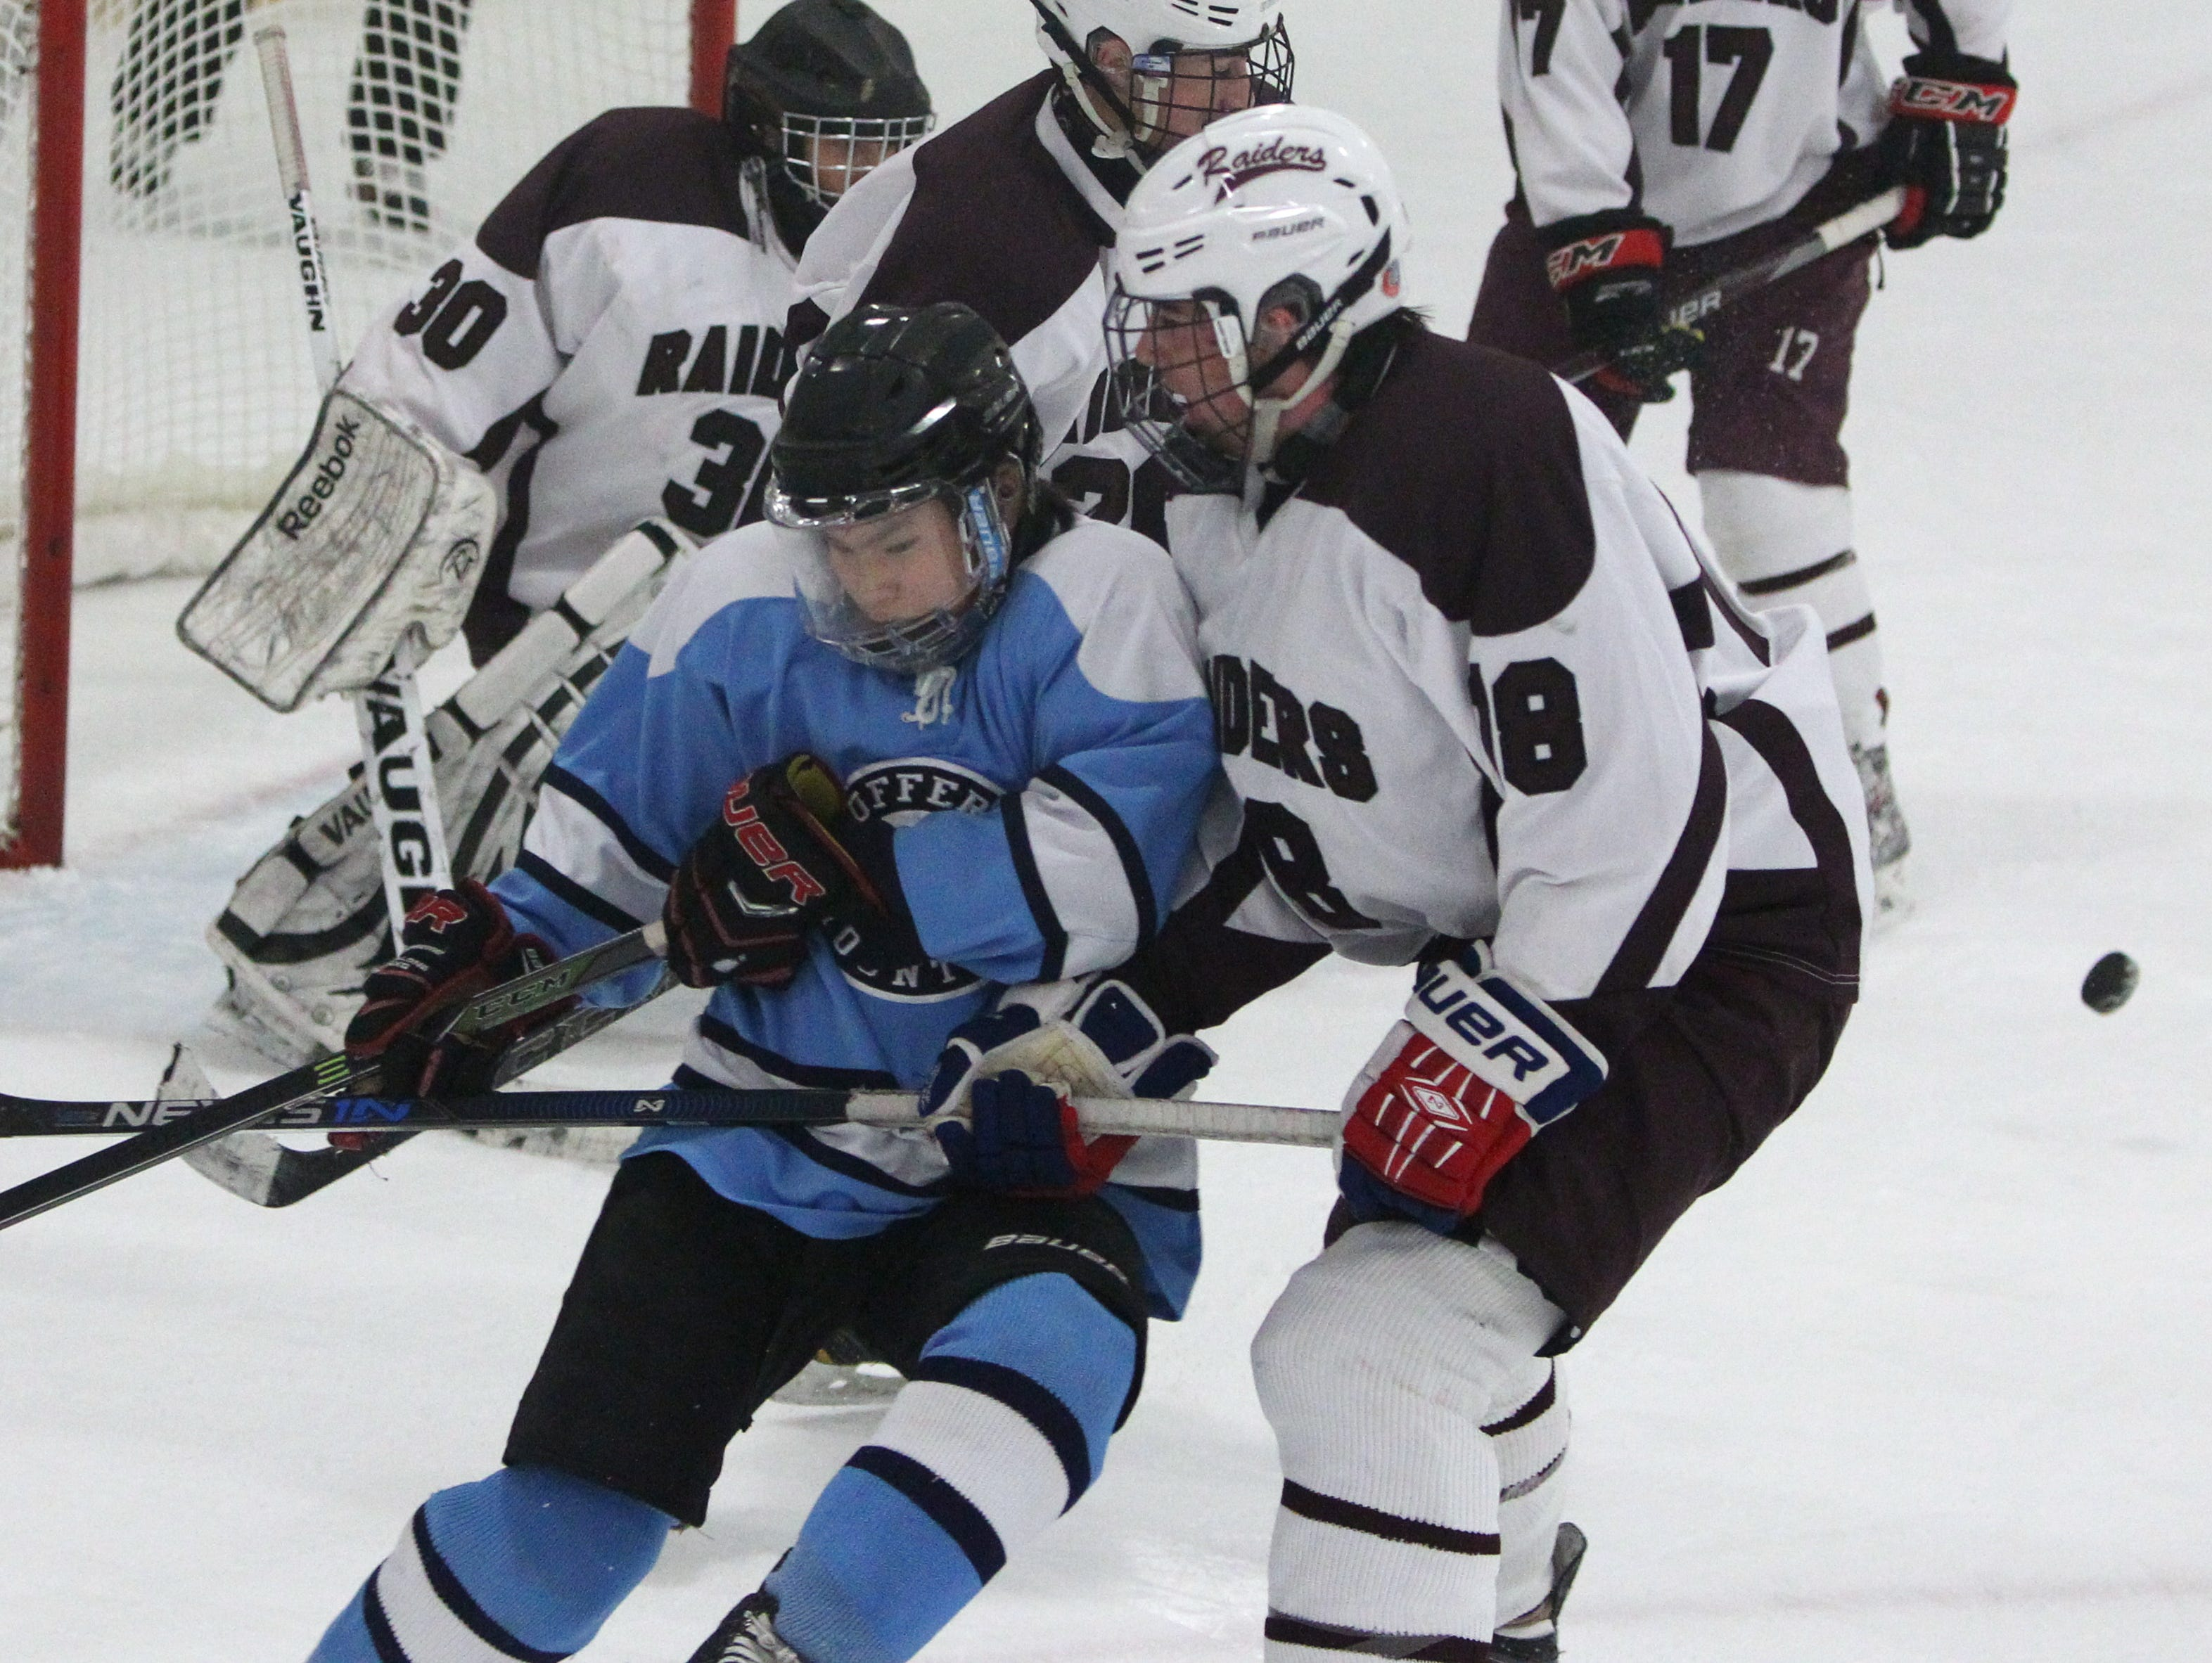 Suffern's Evan Cama, left, is pressured by Scarsdale's Martin McDonald during their game at the E.J. Murray rink in Yonkers Dec. 7, 2015. Scarsdale won 1-0.